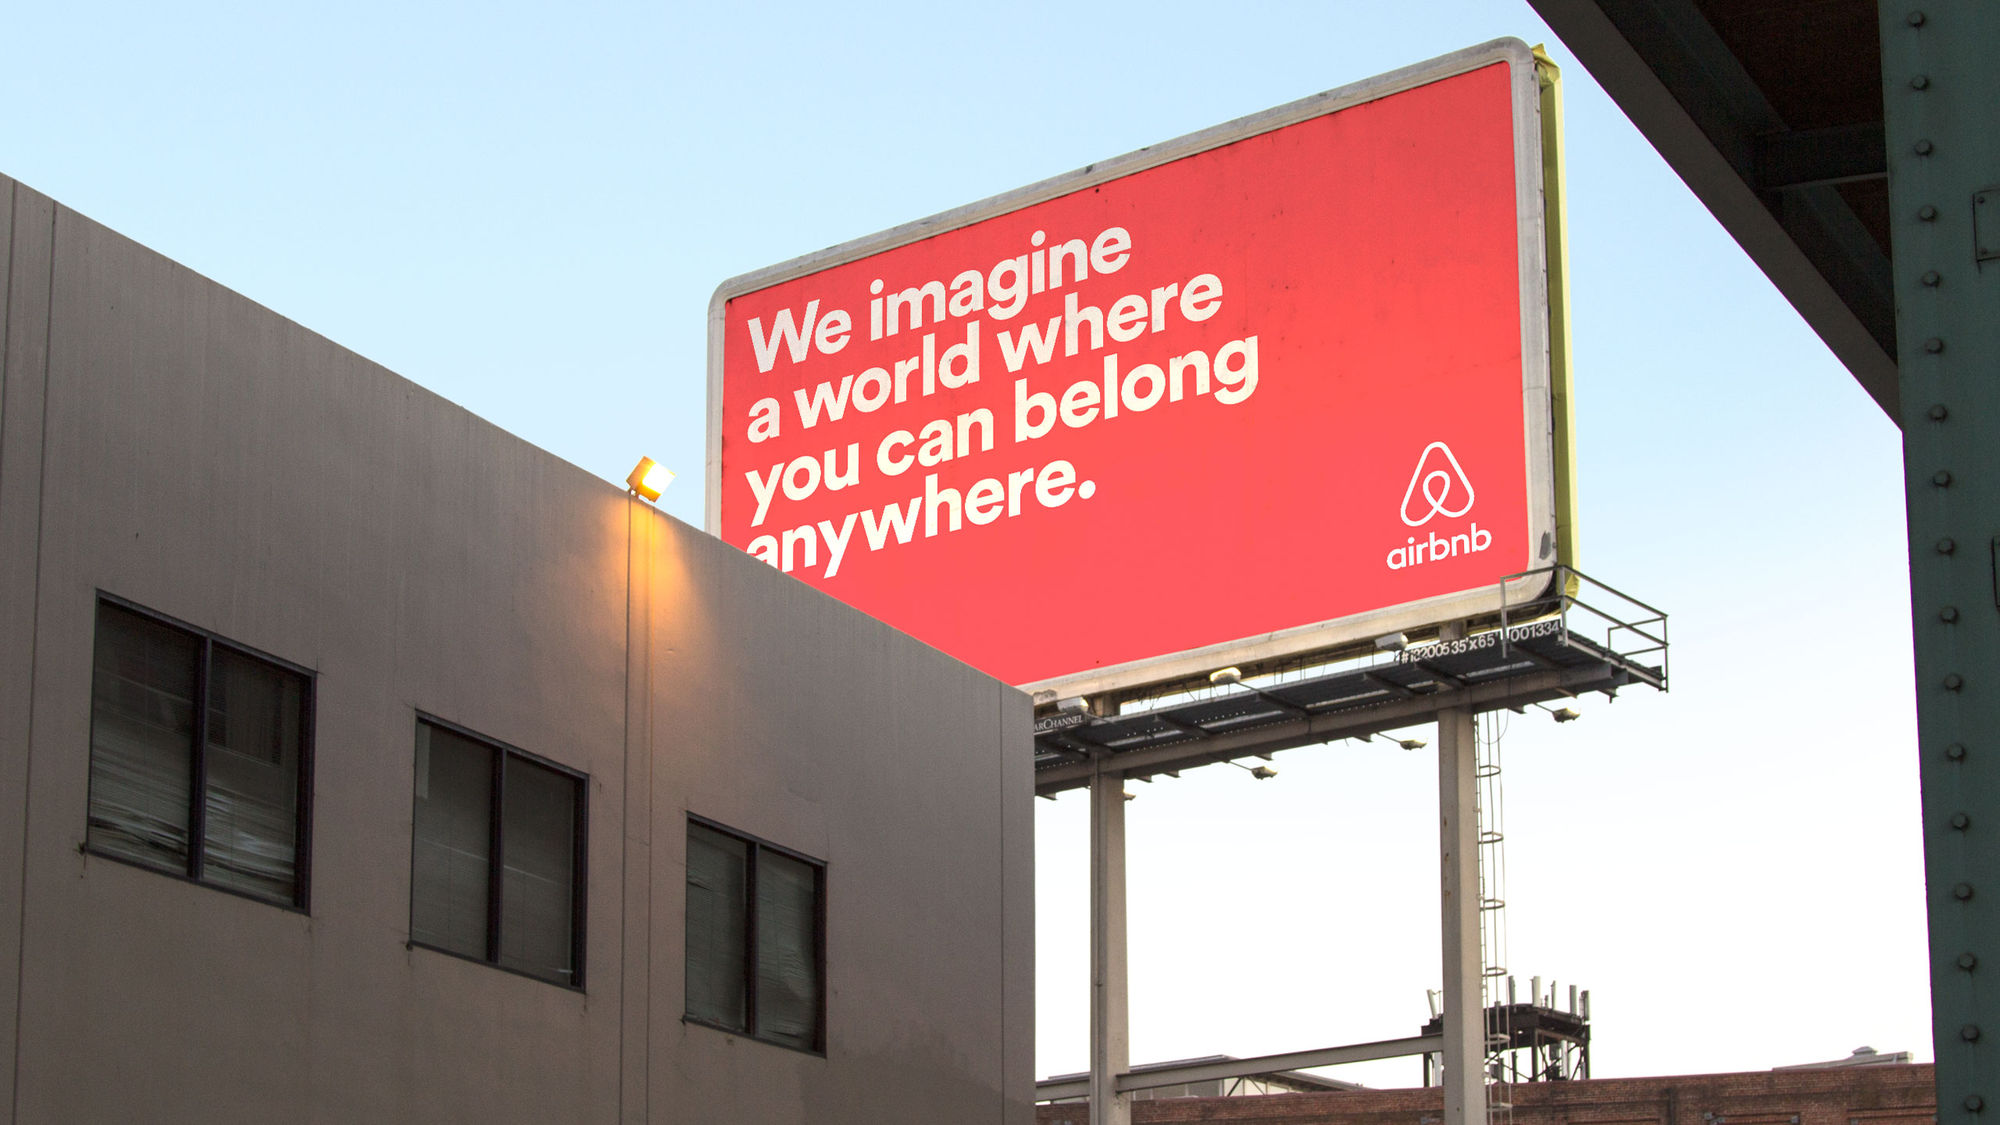 airbnbcov_0.jpg - Festival of Marketing 2014: why Airbnb's rebrand was no disaster - 6973